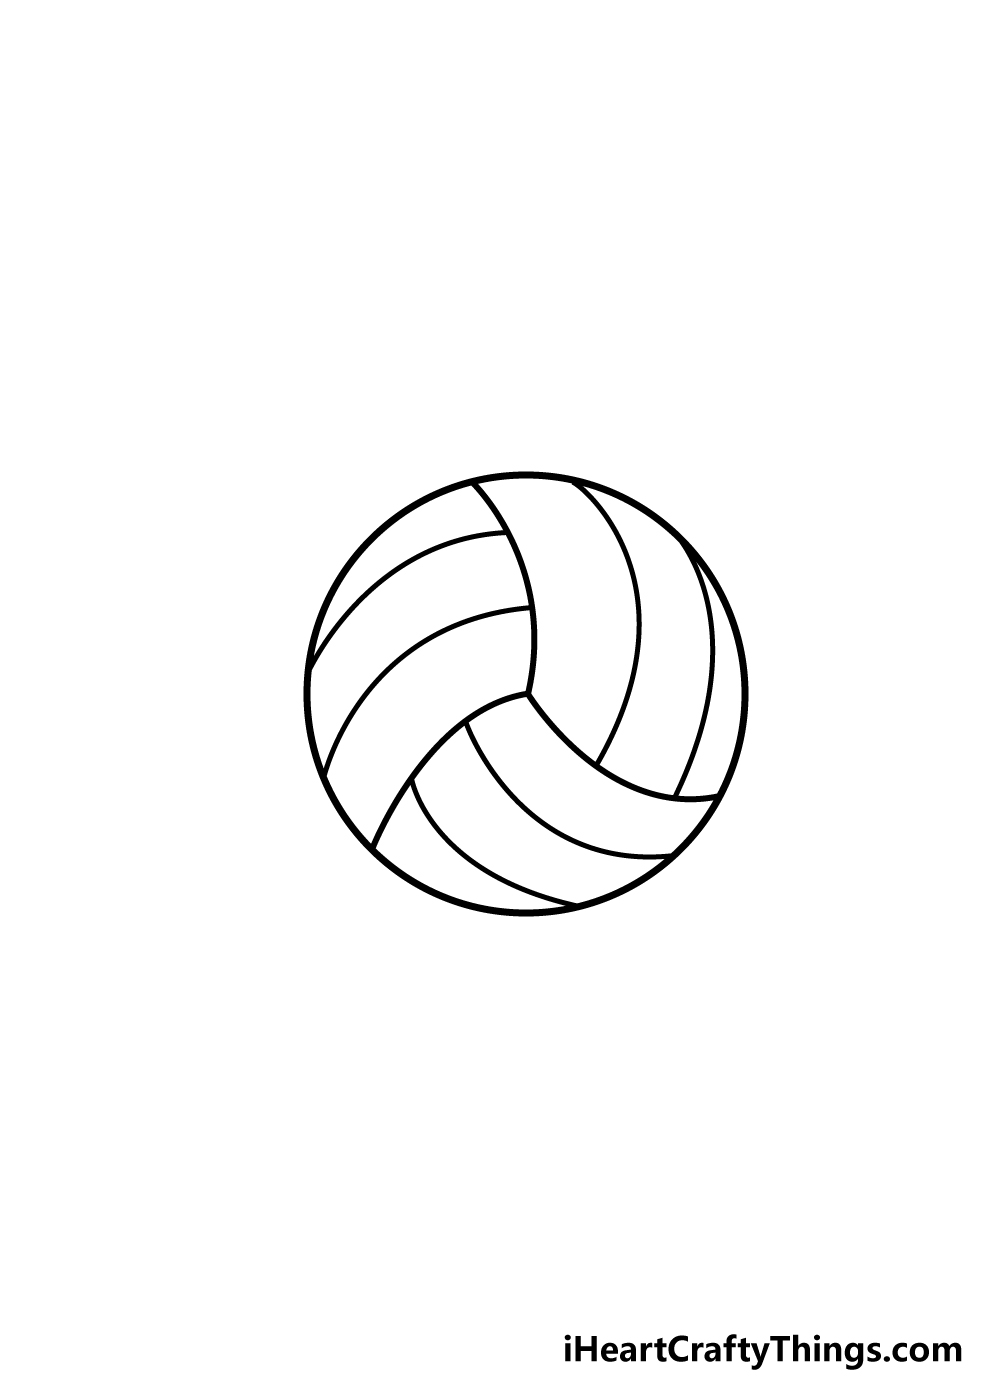 volleyball drawing step 5